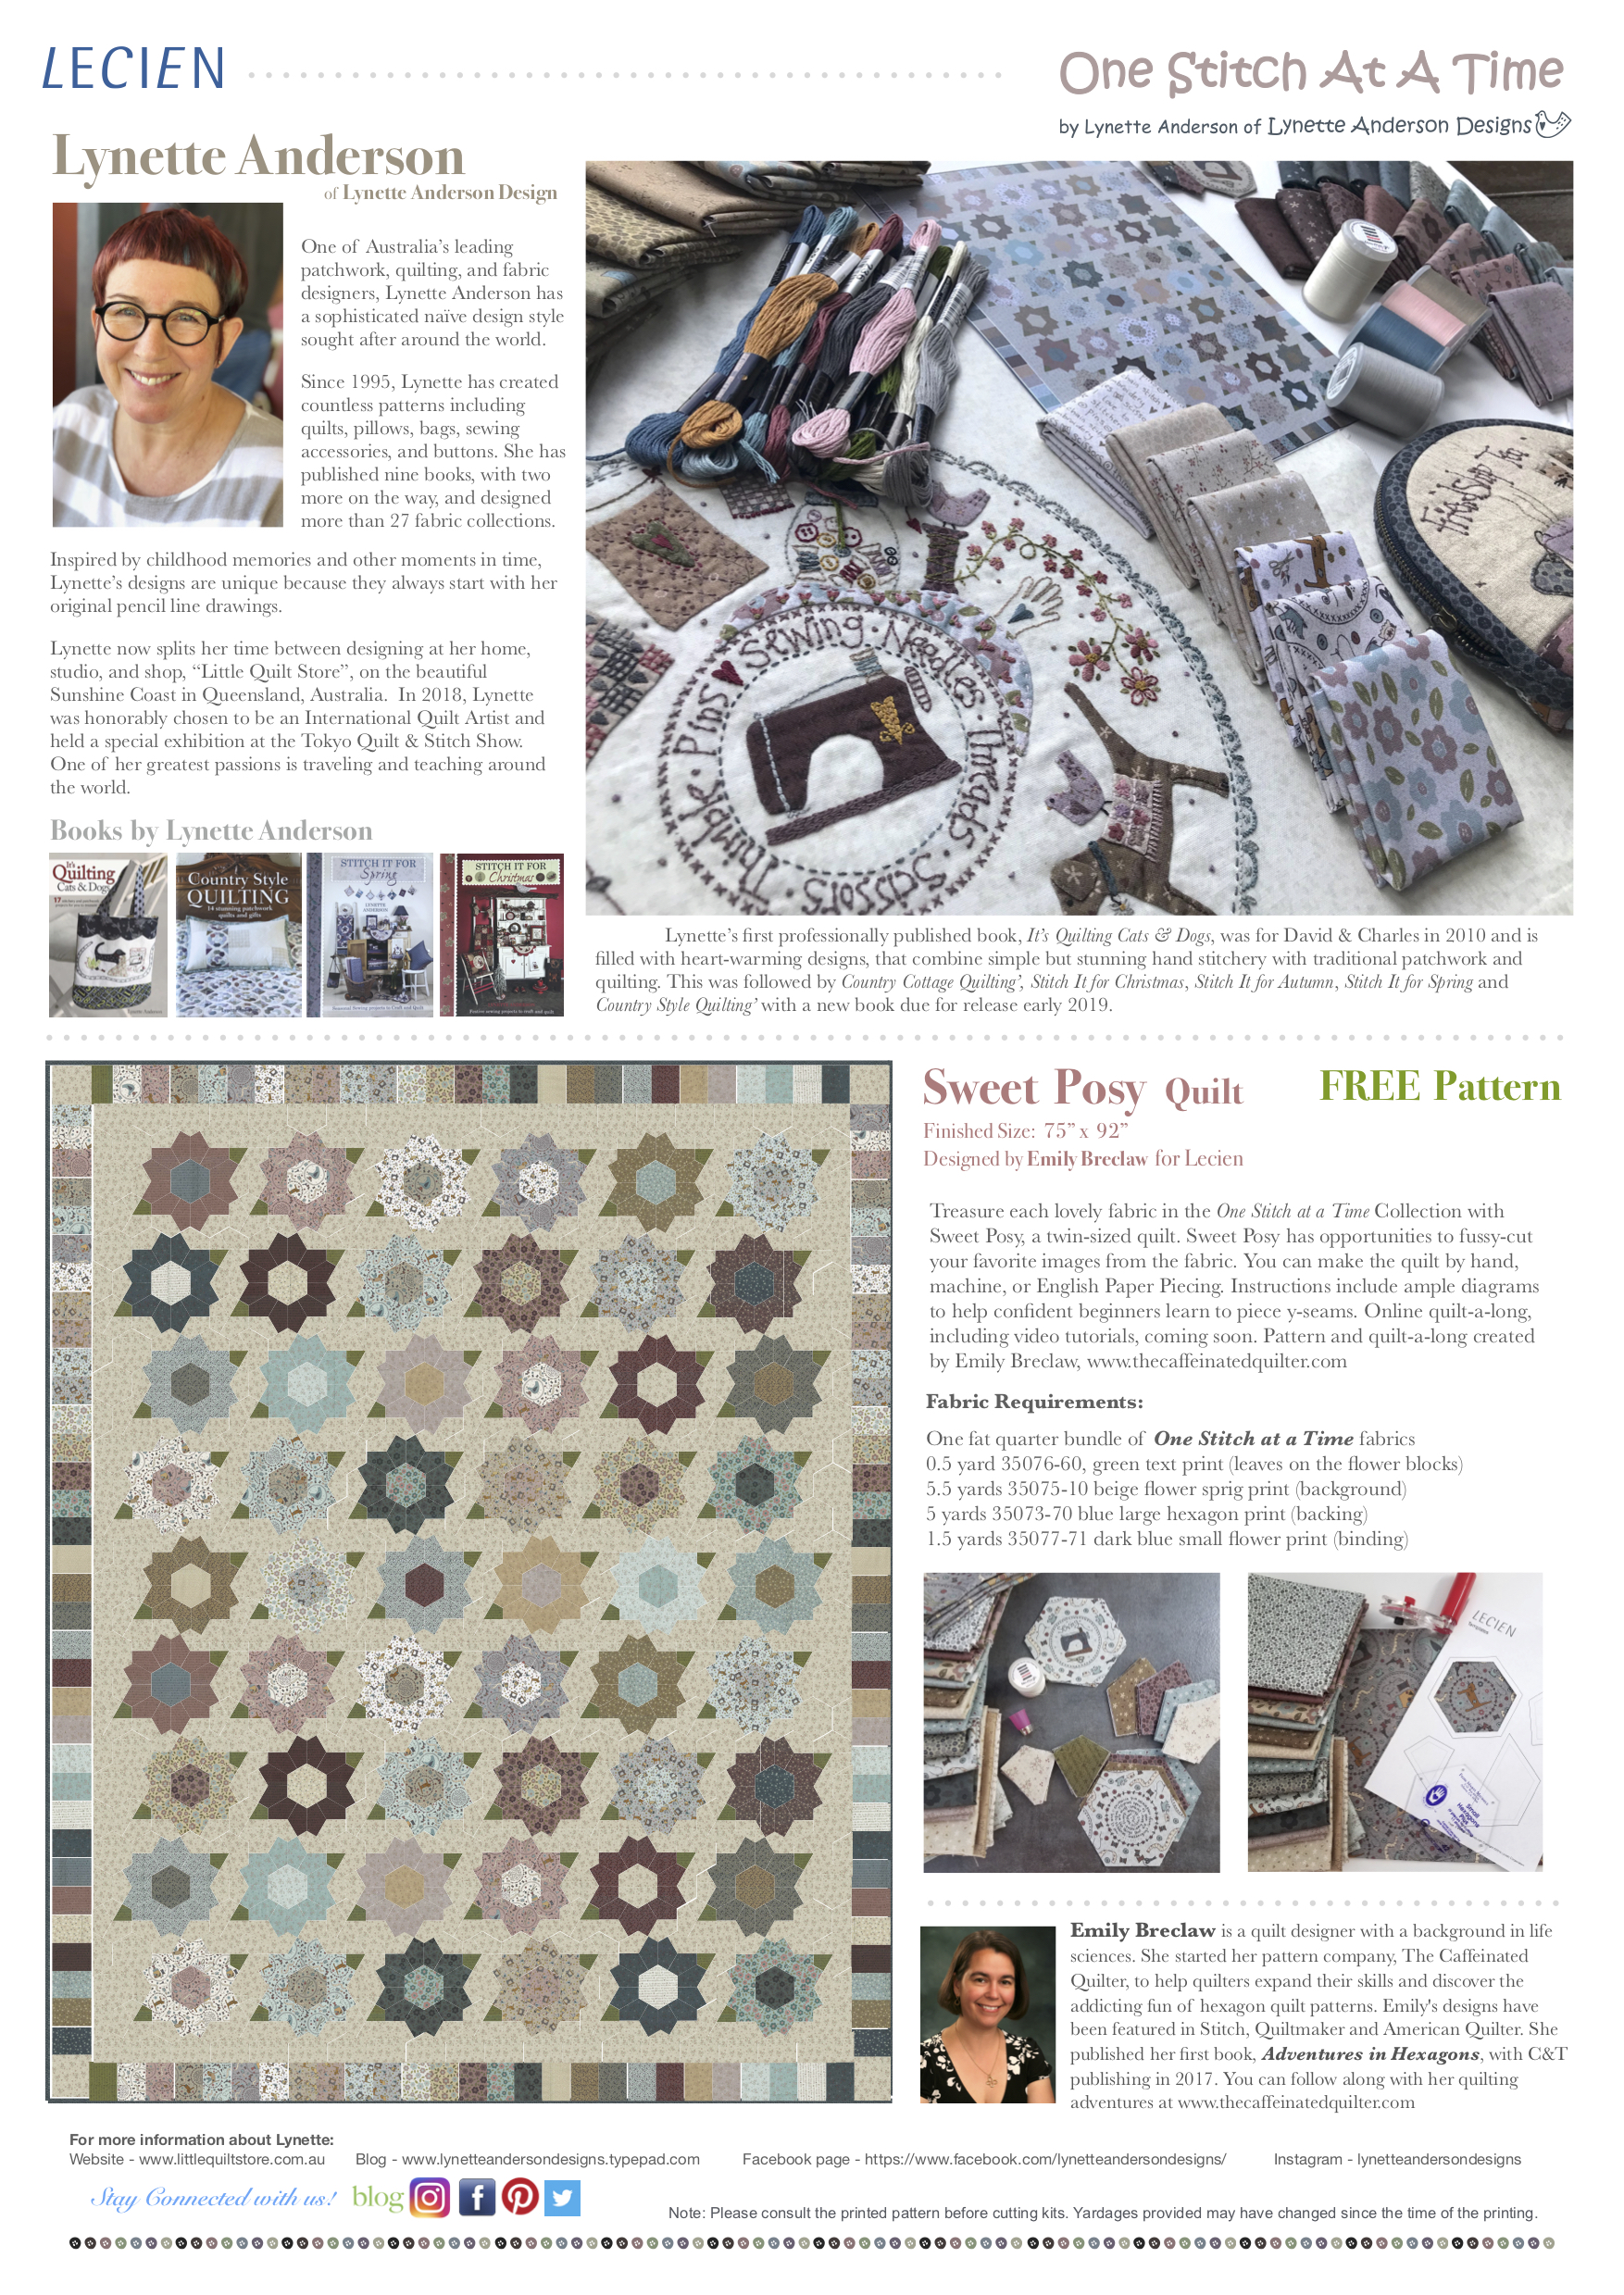 Sweet Posy Quilt featuring One Stitch at A Time